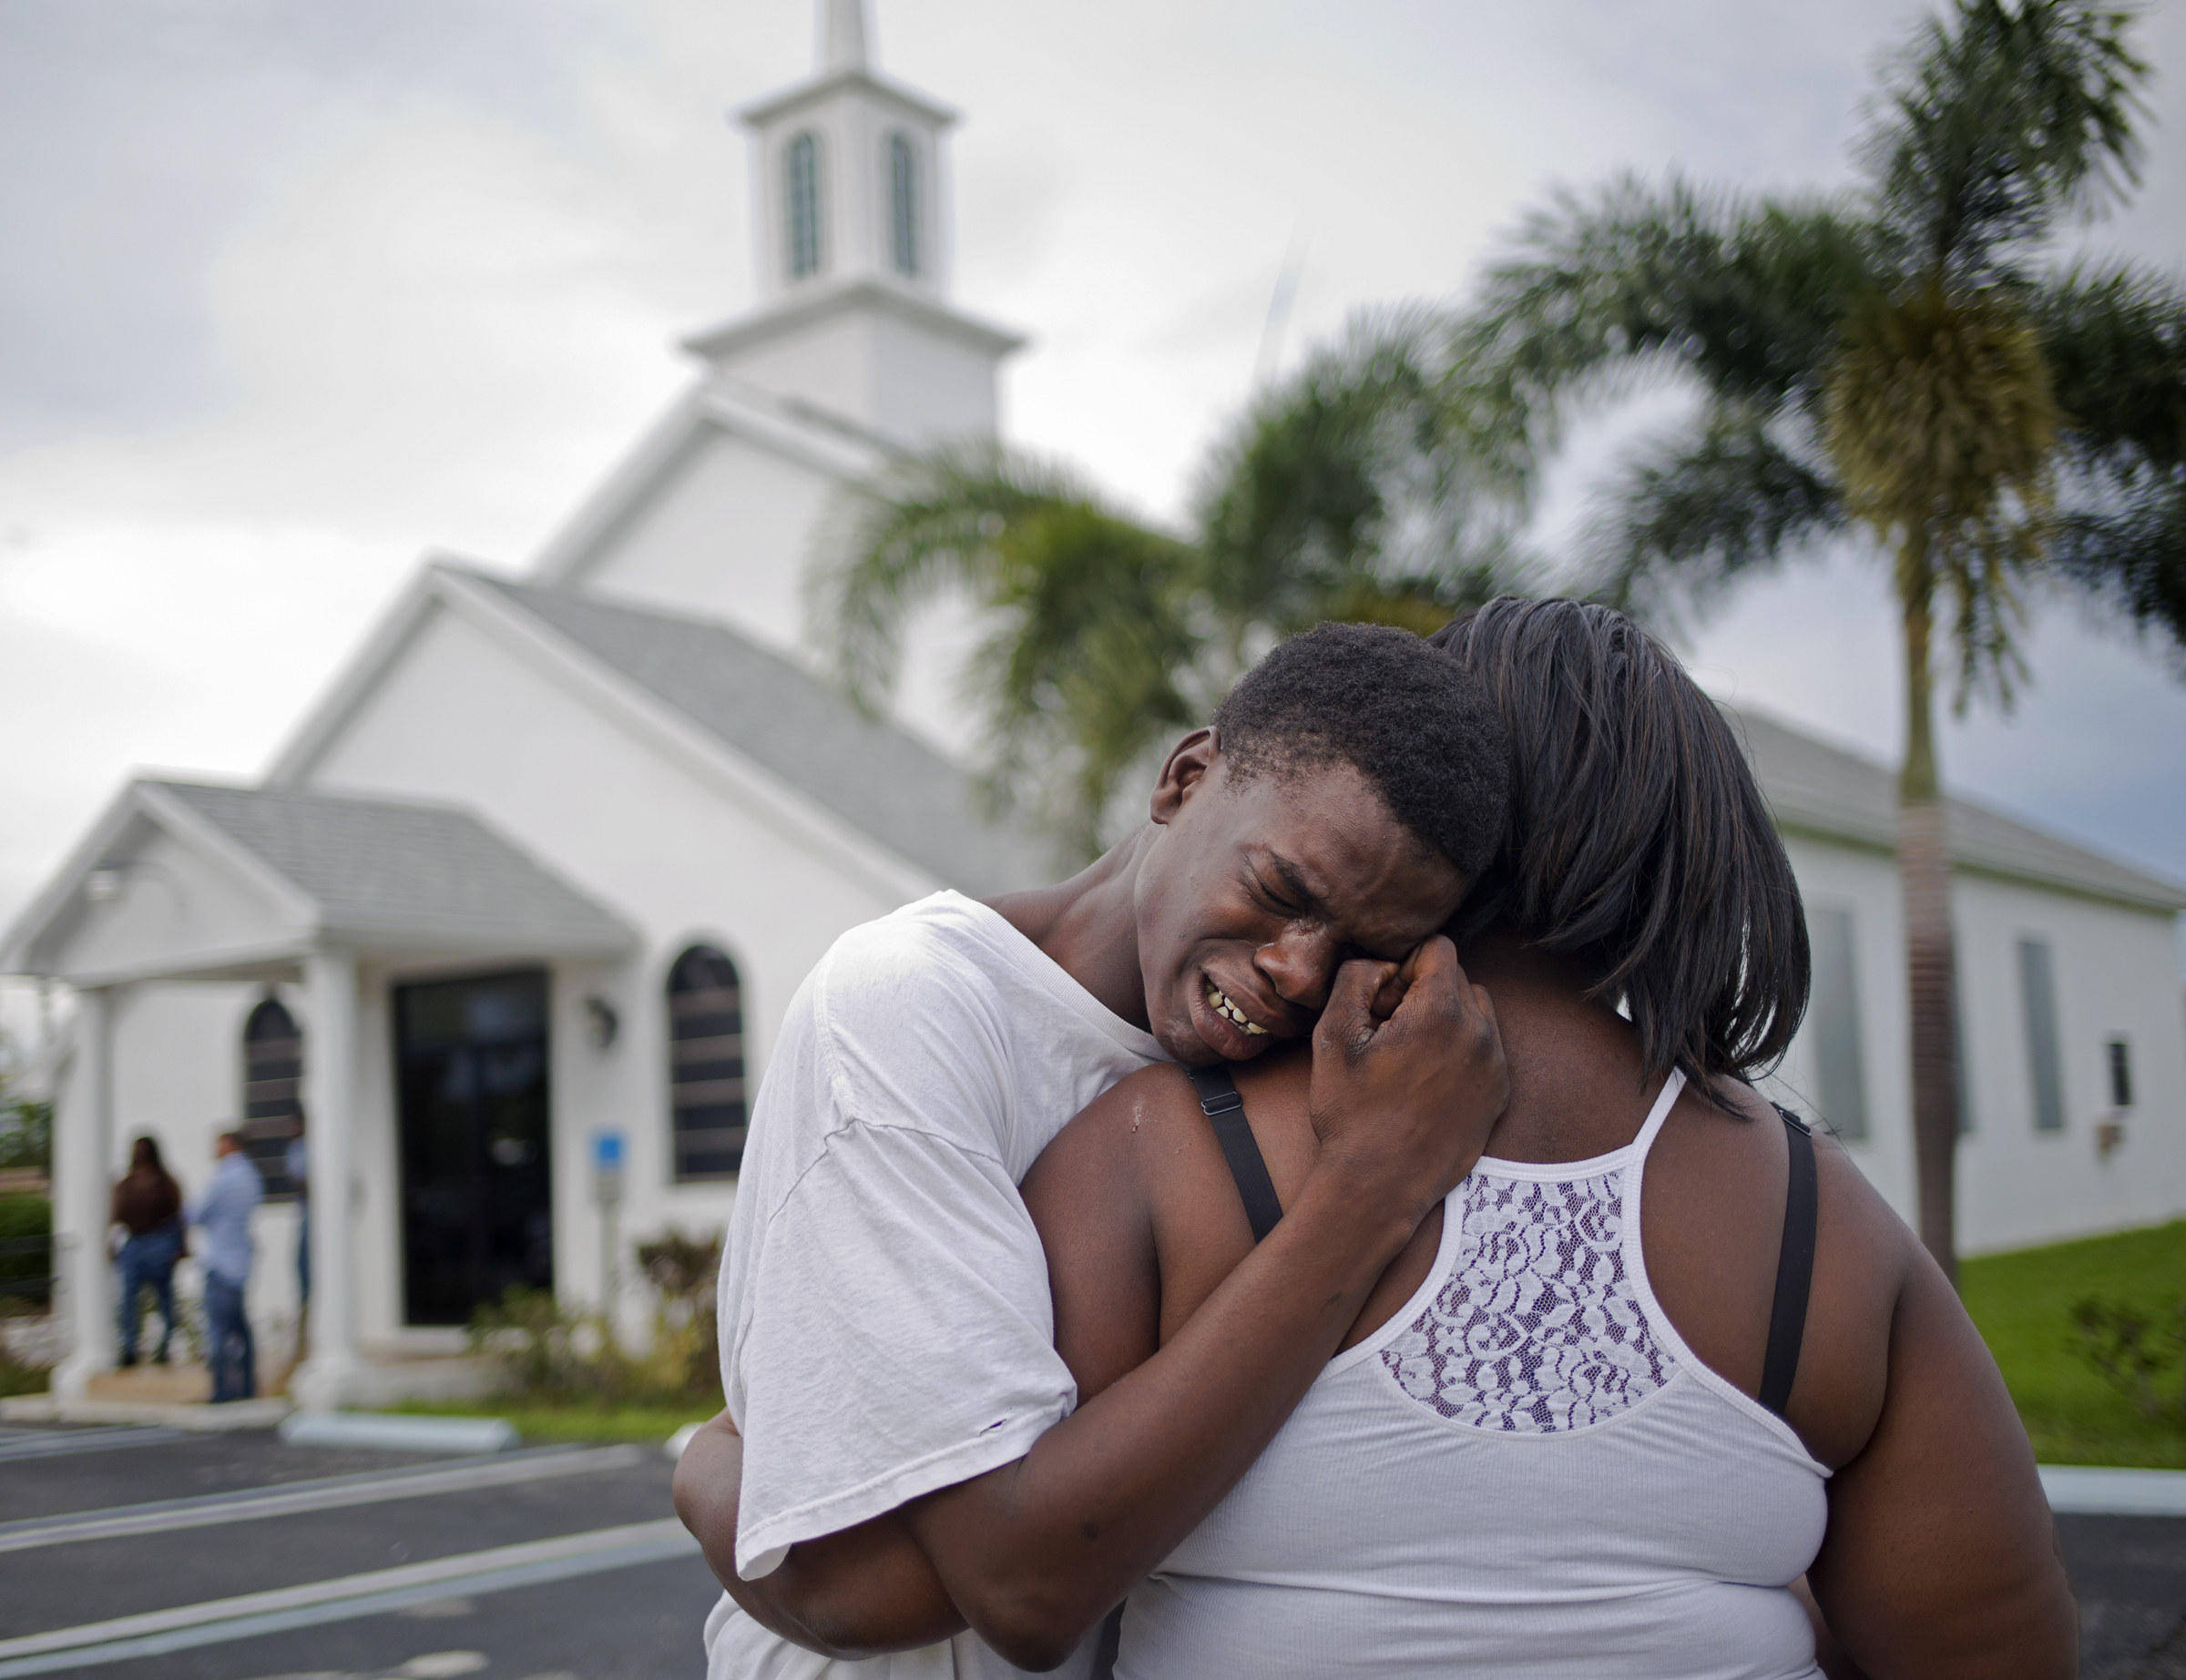 Lawerence Alston, 17, cries on the shoulder of a friend during the wake of his best friend Johnny Taylor Davis Jr. who was killed in a drive-by shooting in his North West Palm Beach neighborhood.  Davis' neighborhood, which is just a few miles away from Trump's winter home Mar-a-Lago, was ravaged by gun violence over the summer of 2015. Overall, ten people were killed at 28 were wounded.